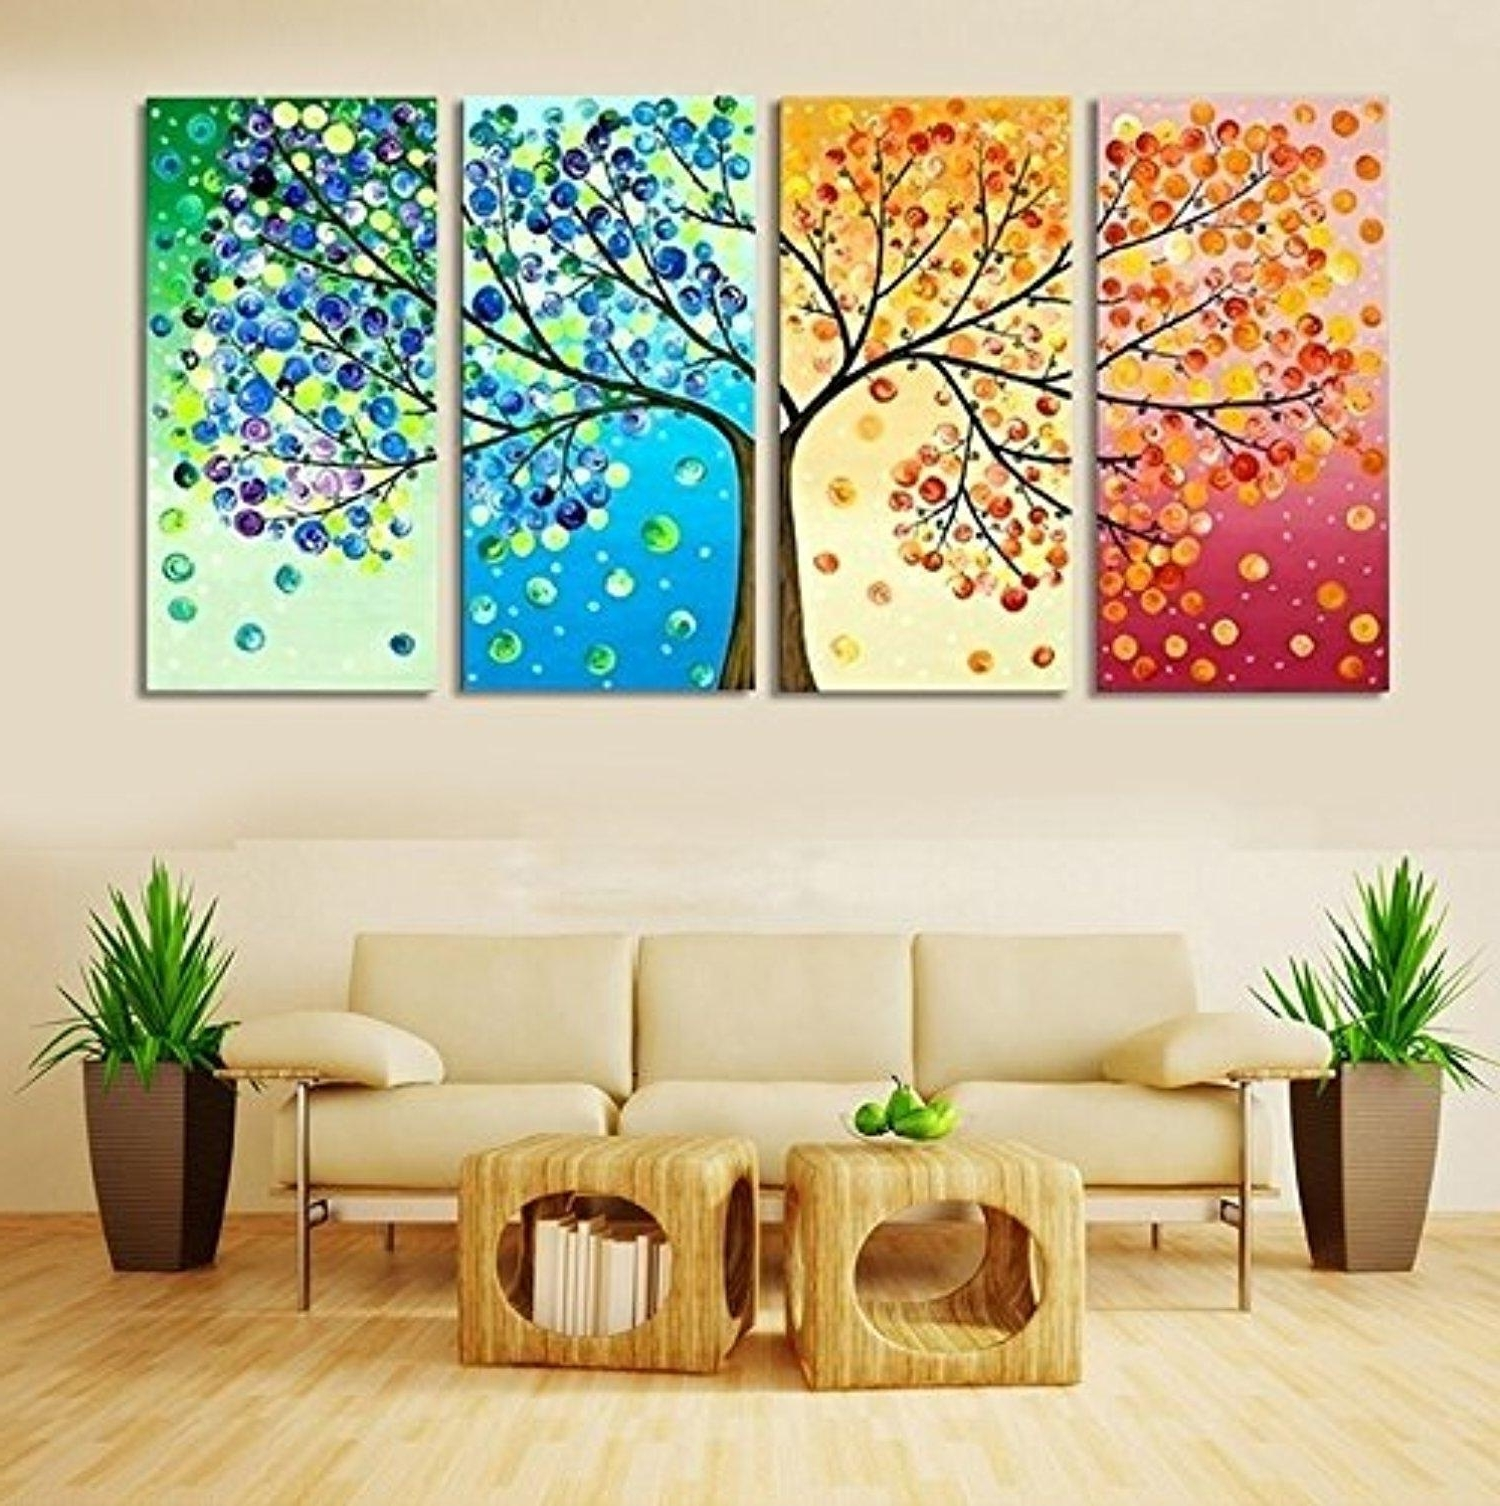 Well Known Inexpensive Framed Wall Art With Home Decor : Amazing Home Decor Framed Art Decorating Idea (View 15 of 15)